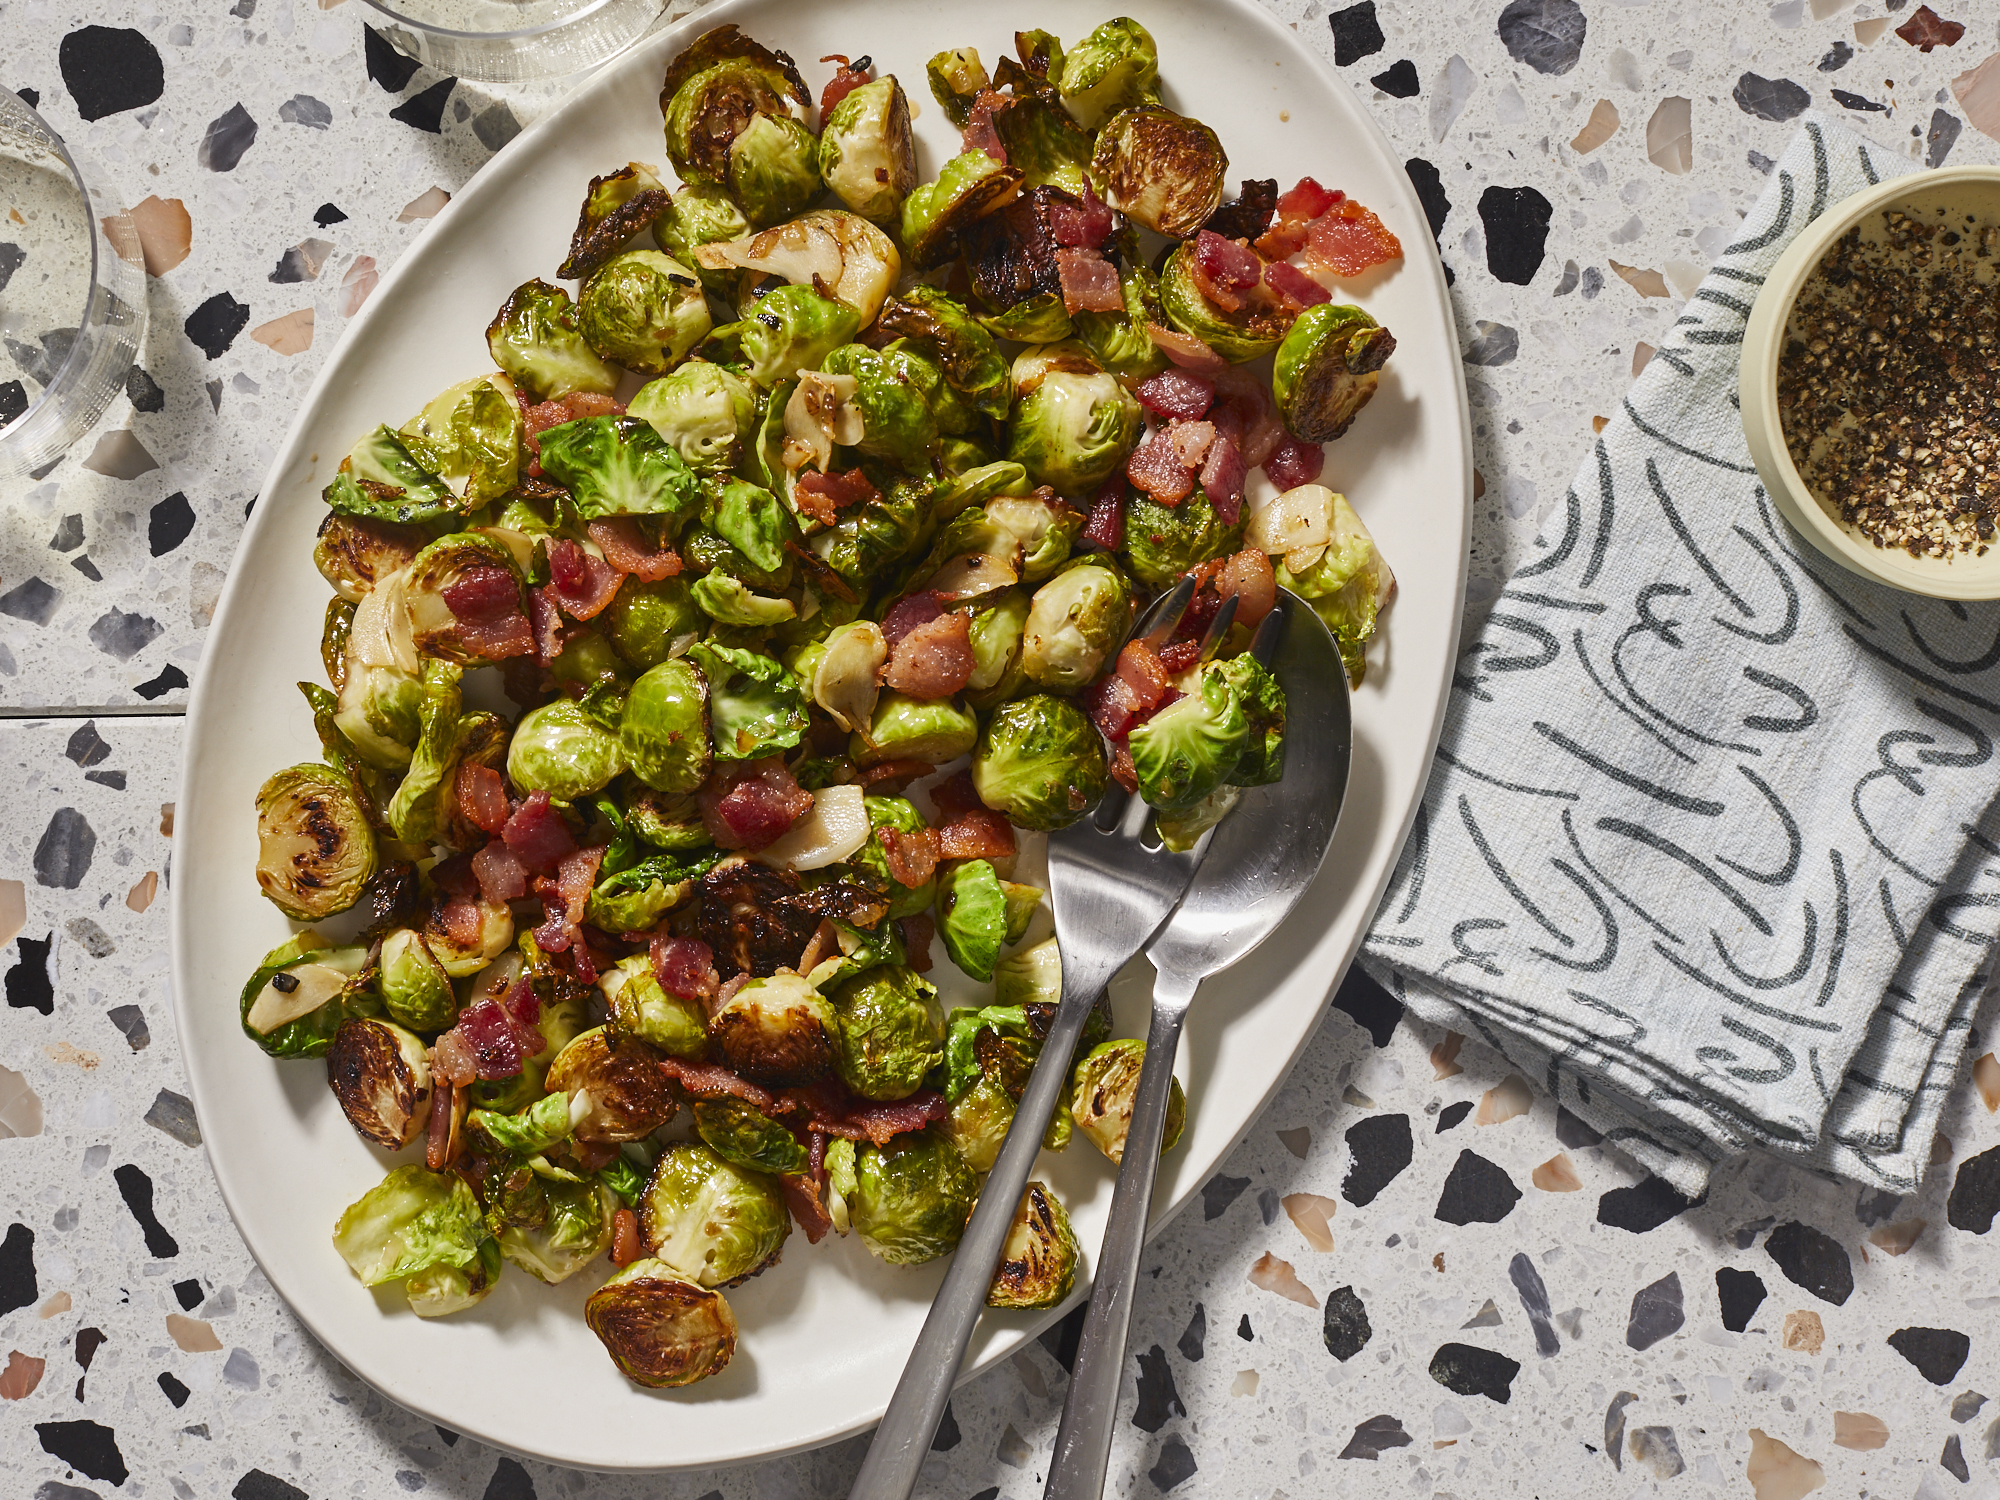 mr-Brussels Sprouts with Bacon, Garlic, and Shallots Image